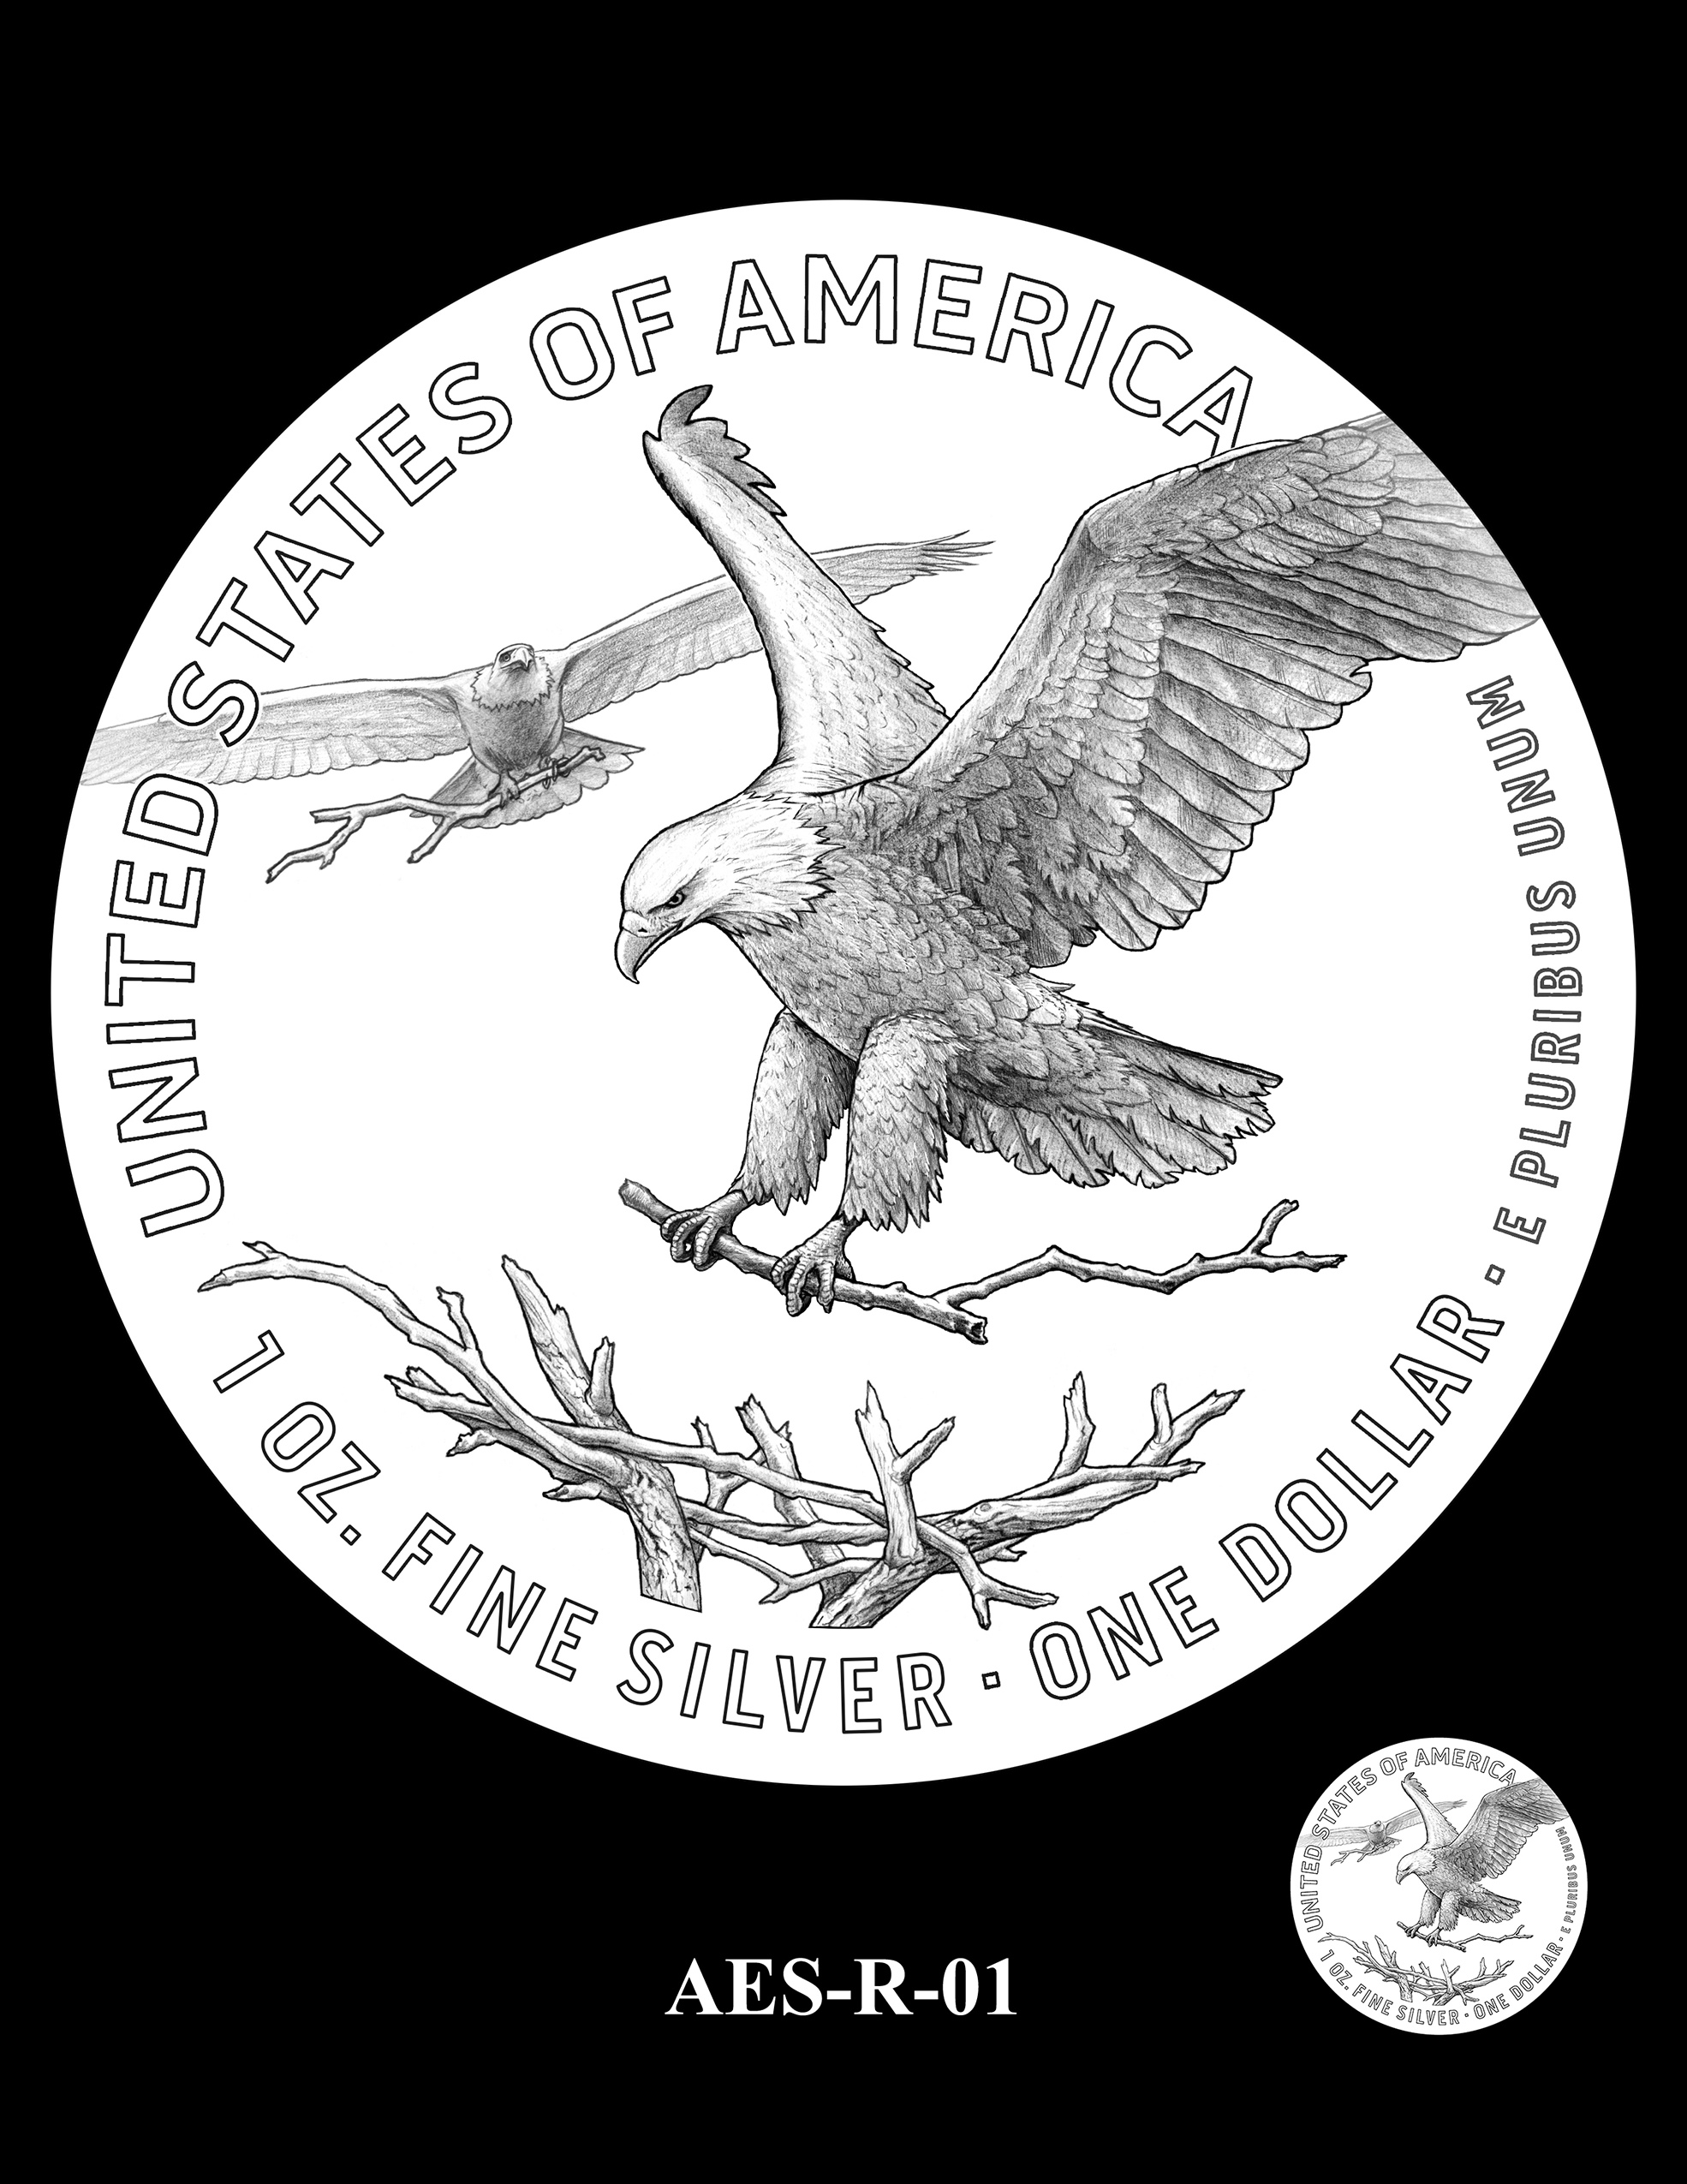 AES-R-01 -- American Eagle Proof and Bullion Silver Coin - Reverse